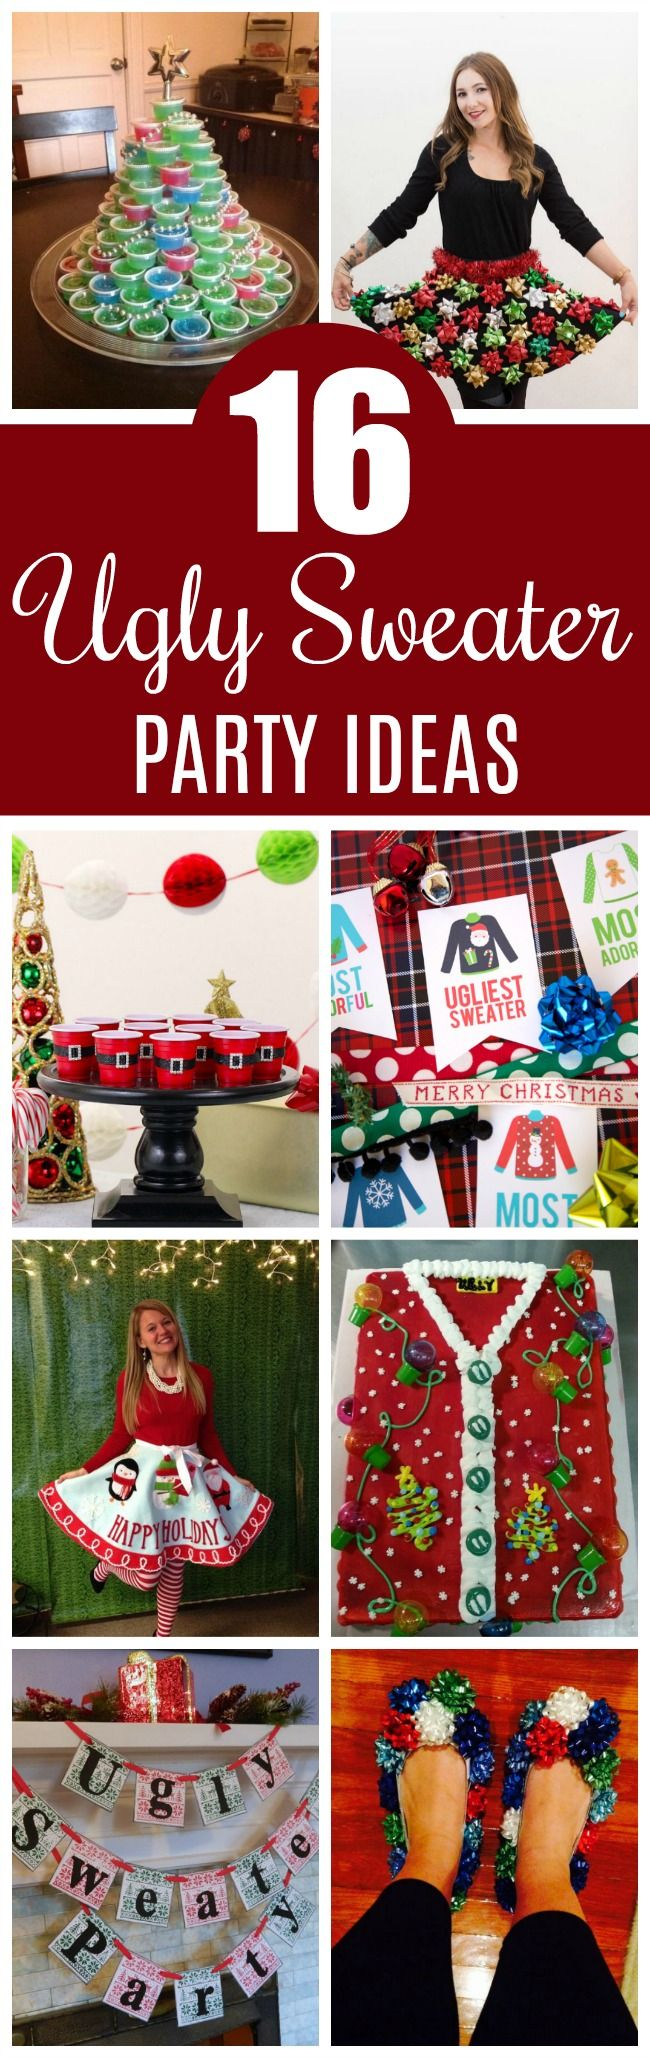 16 Totally Unforgettable Ugly Christmas Sweater Party Ideas on Pretty My Party #uglysweaterpartyideas #uglychristmassweaterparty